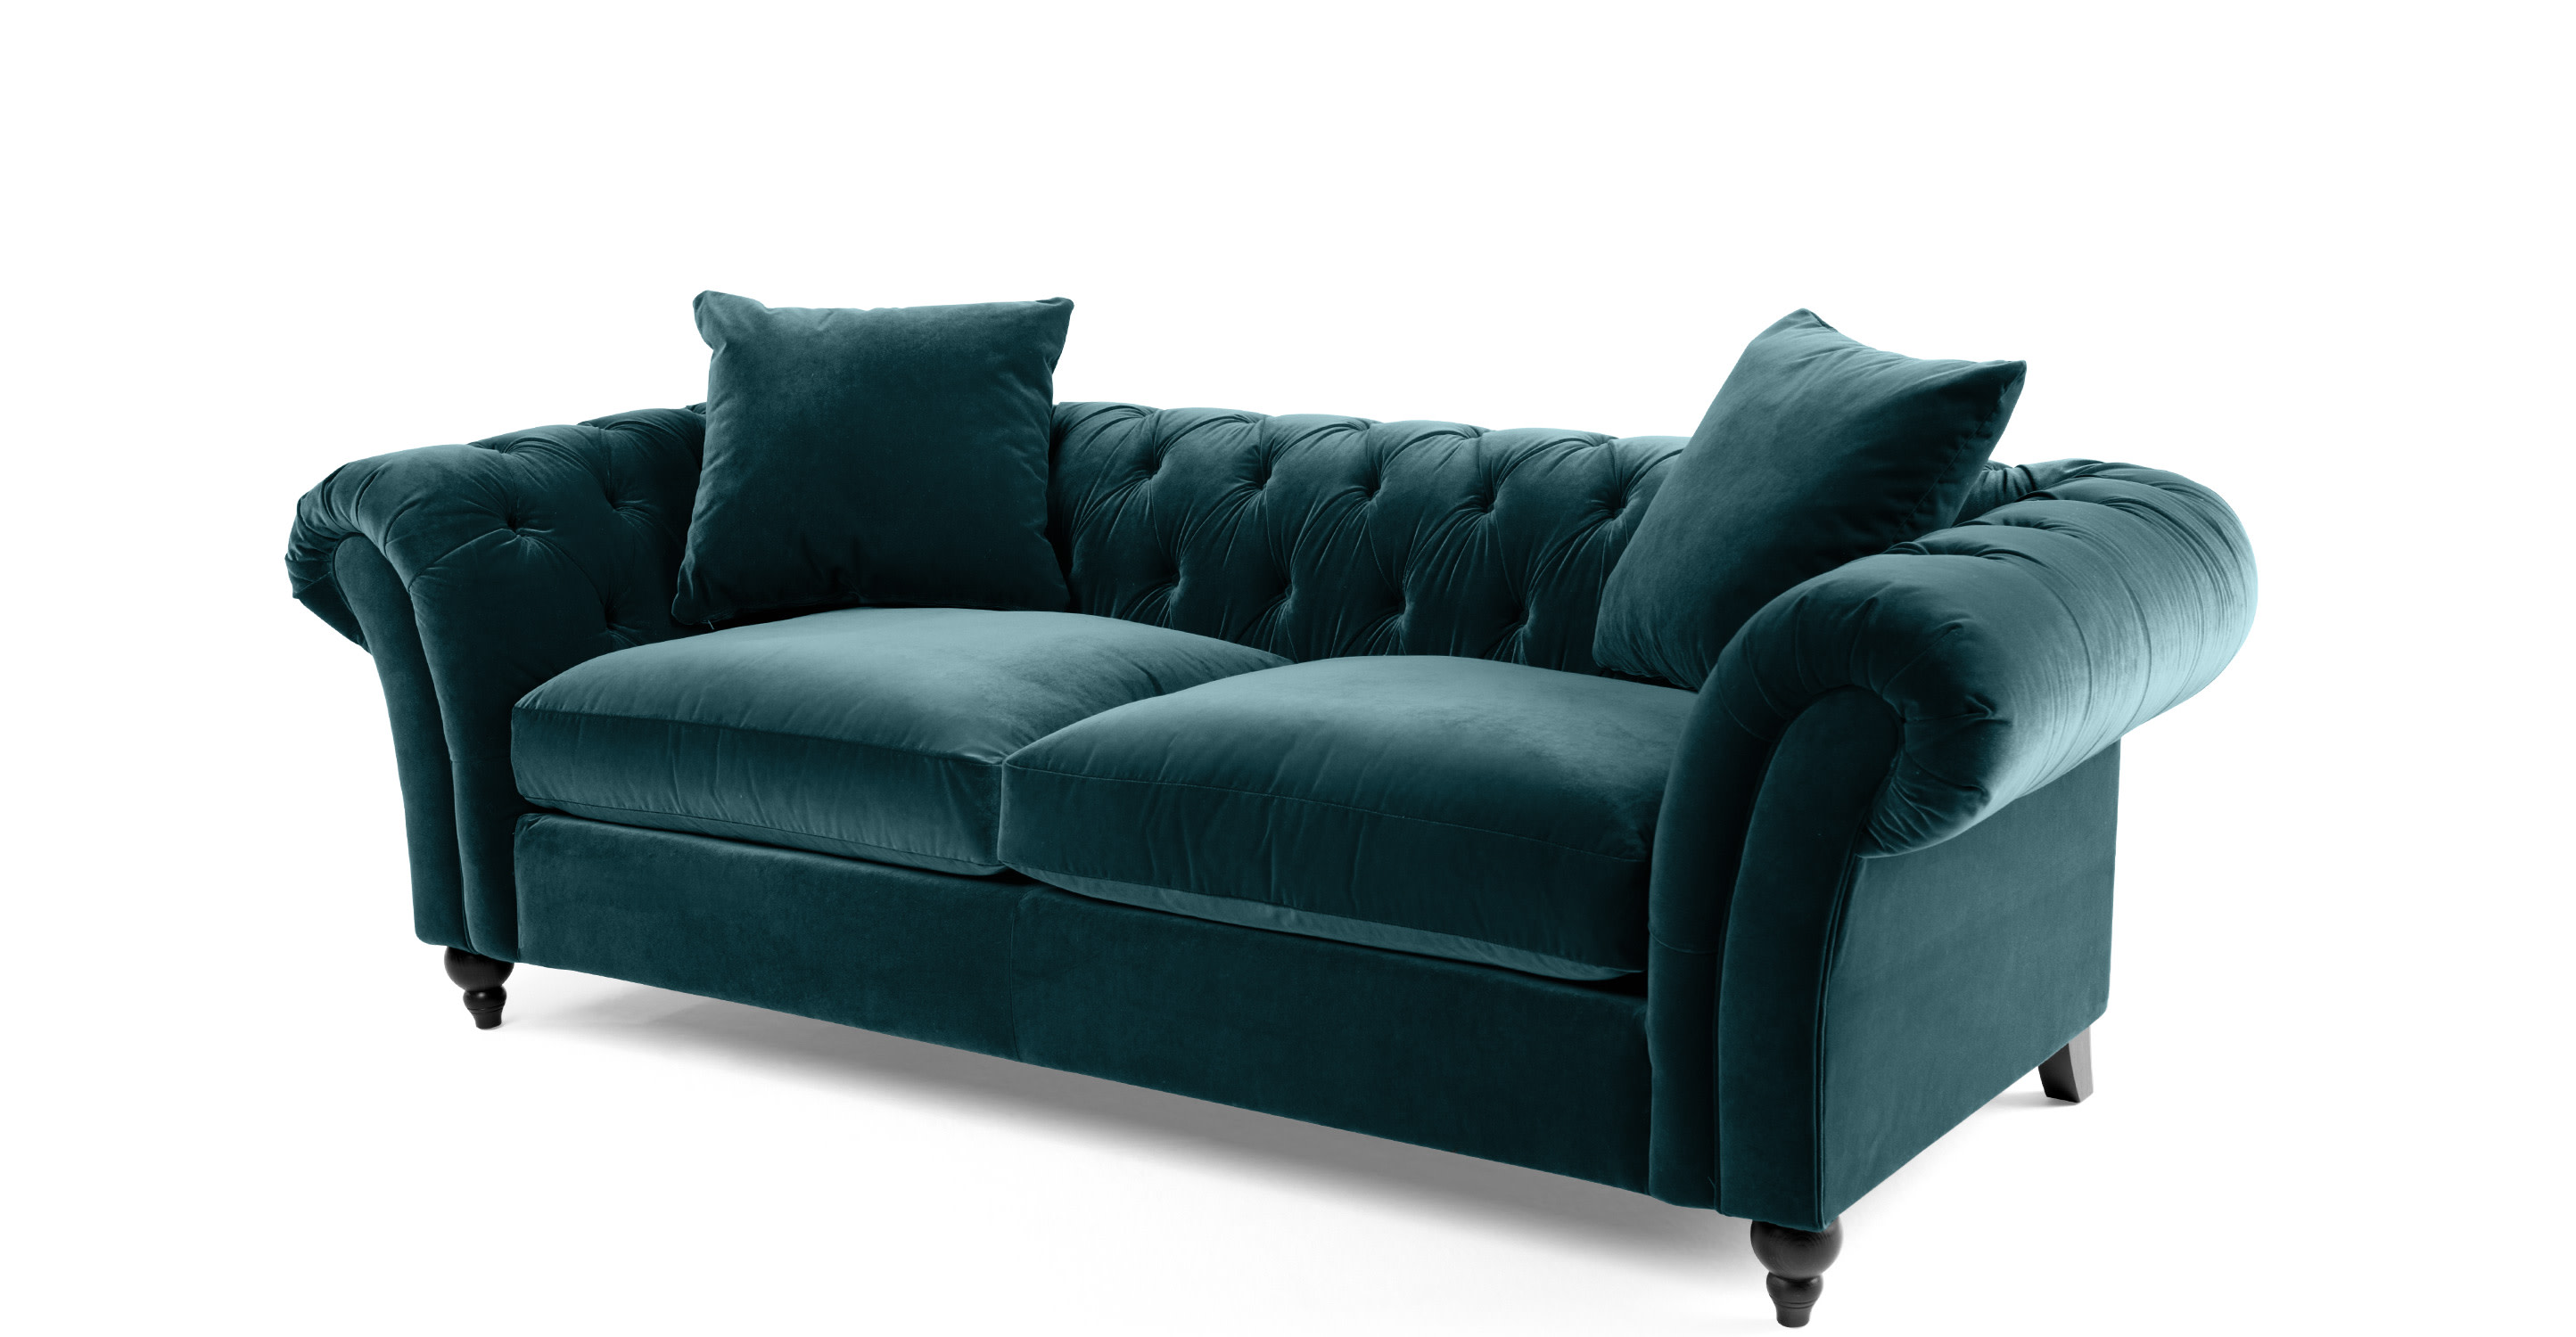 bardot canap chesterfield 3 places velours bleu oc an. Black Bedroom Furniture Sets. Home Design Ideas